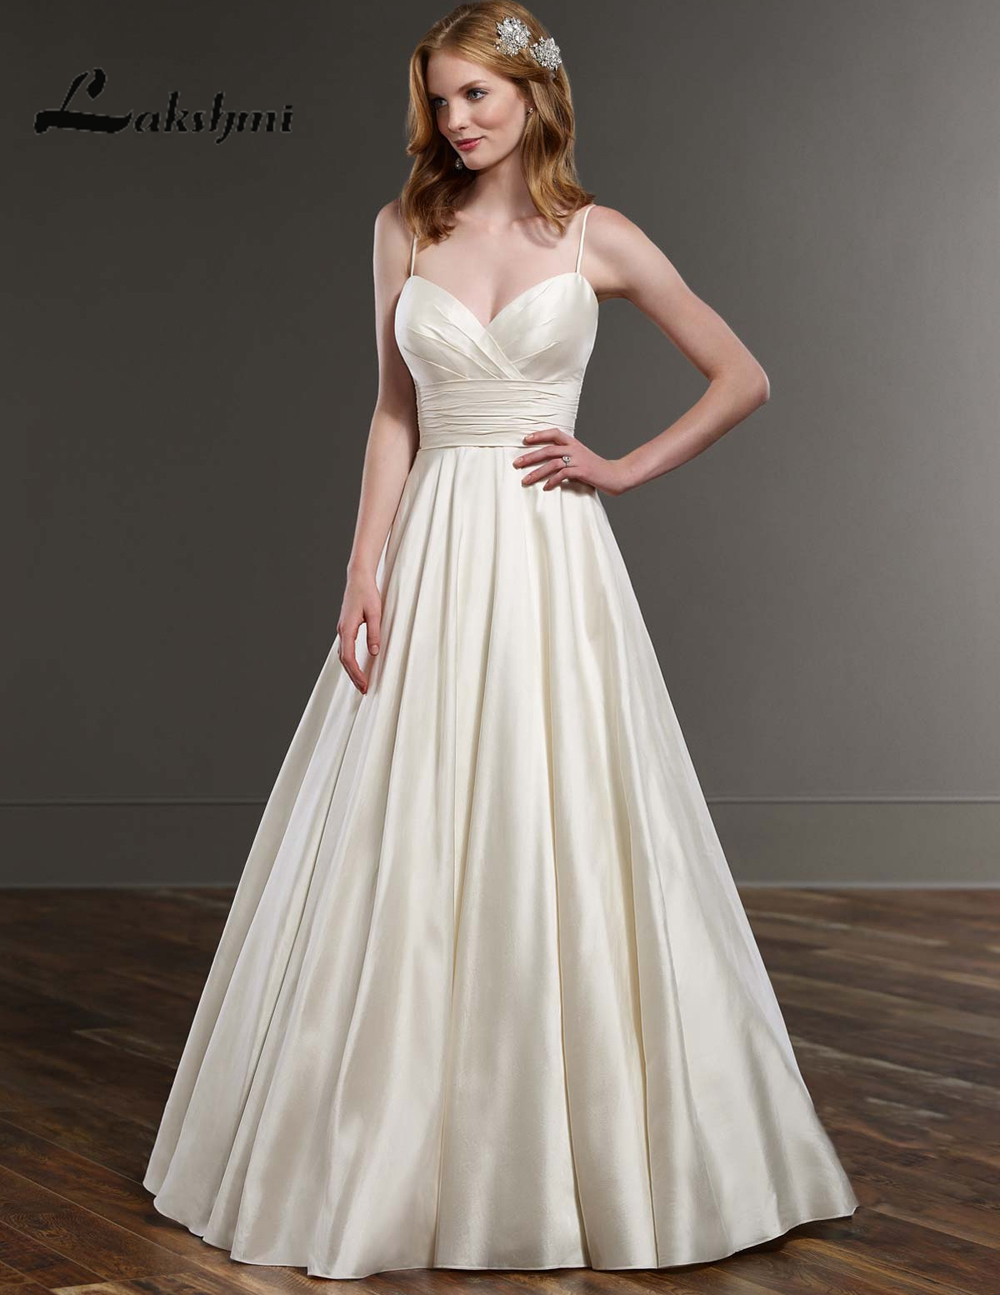 taffeta wedding dresses with pockets white ivory low back bridal gowns